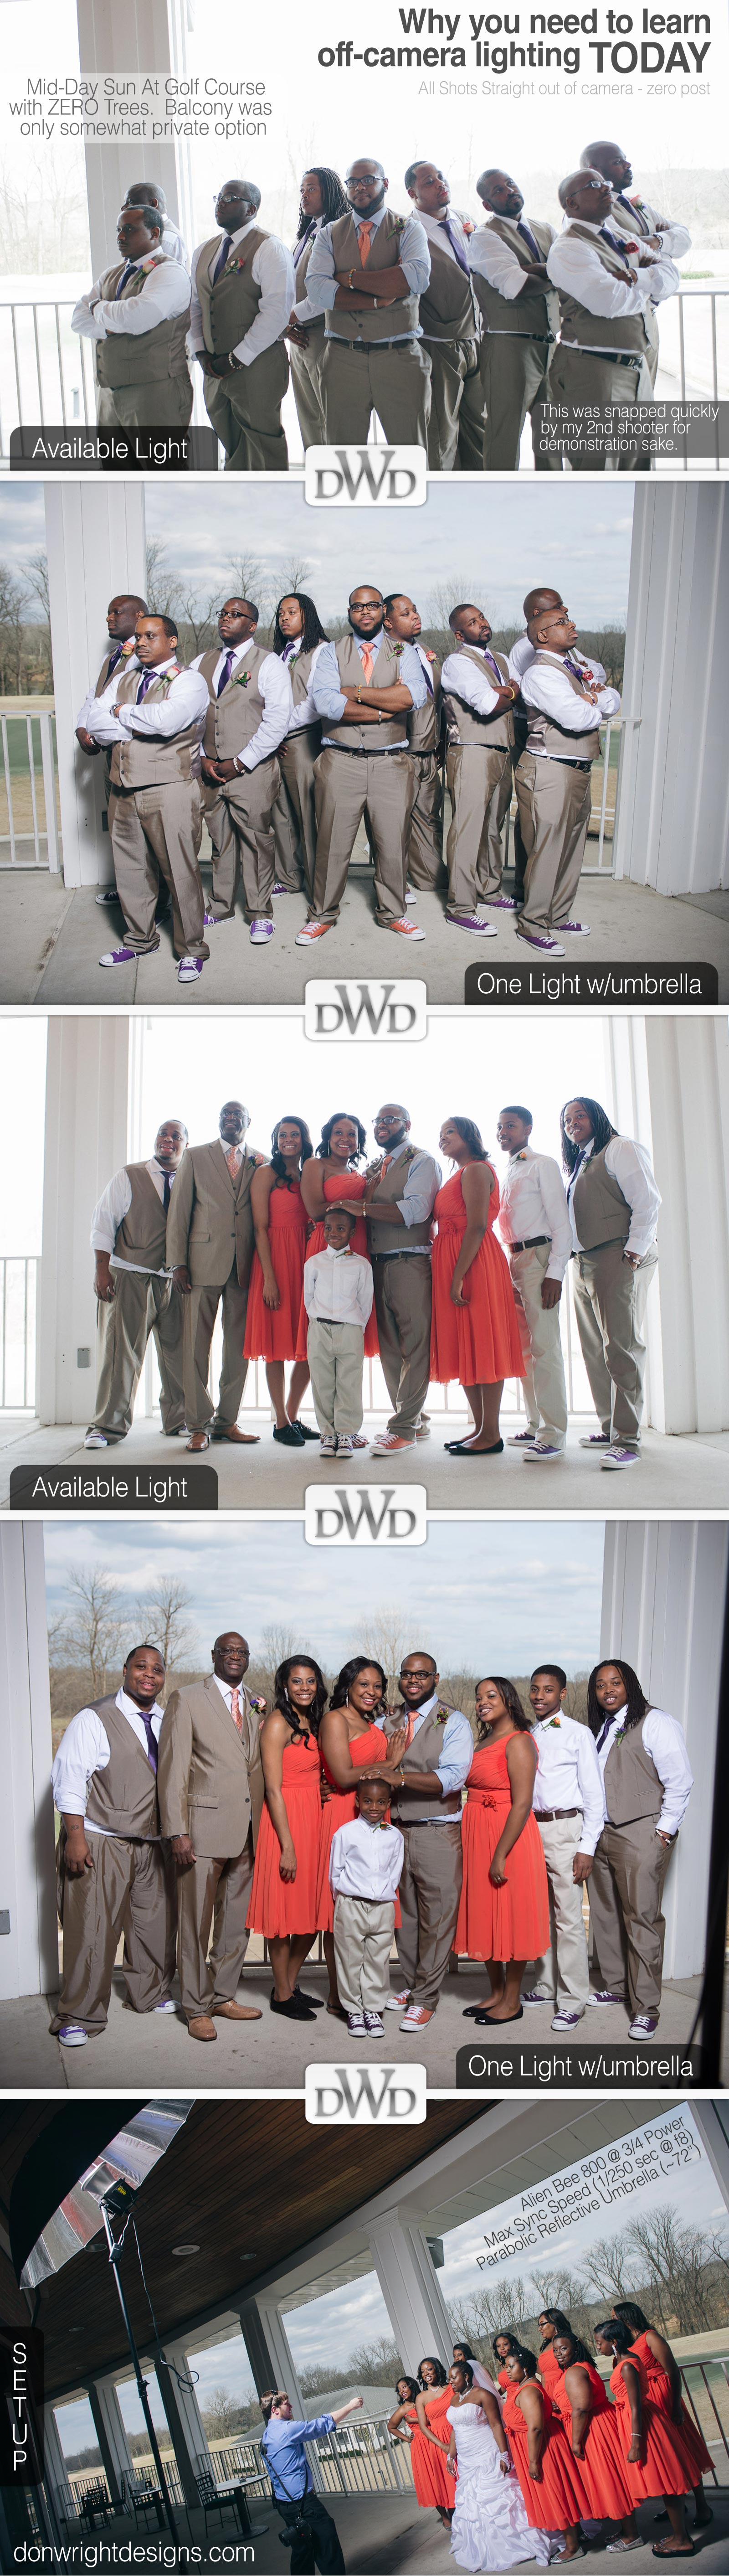 wedding group with available light and off camera flash example comparing